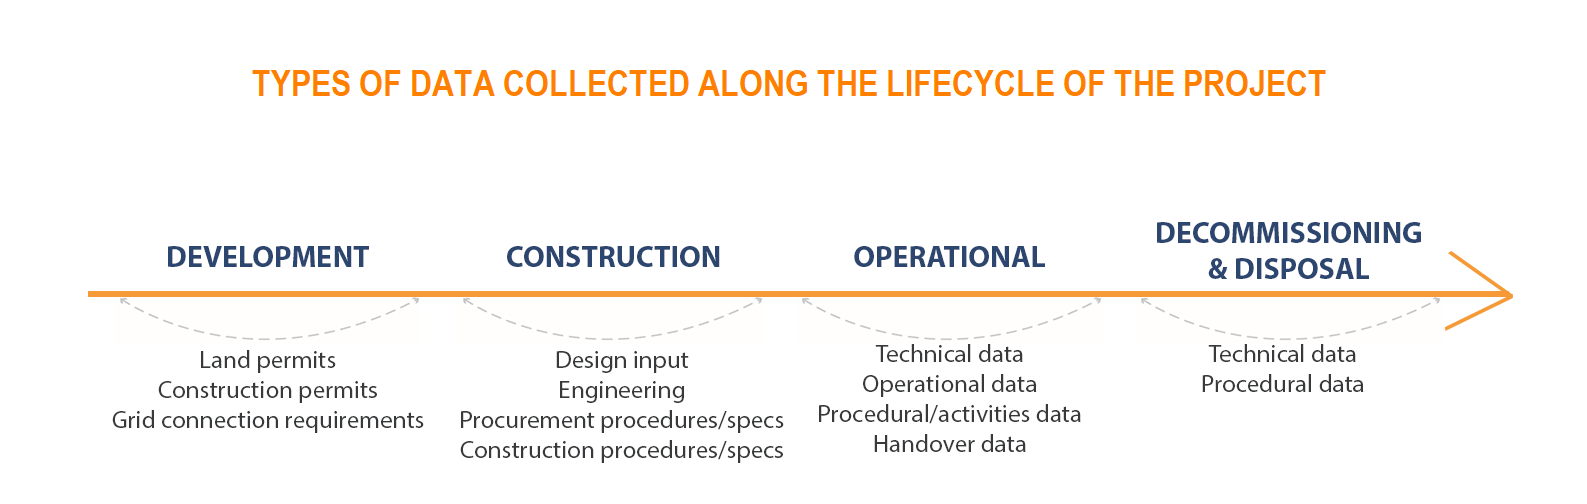 lifecycle data collection